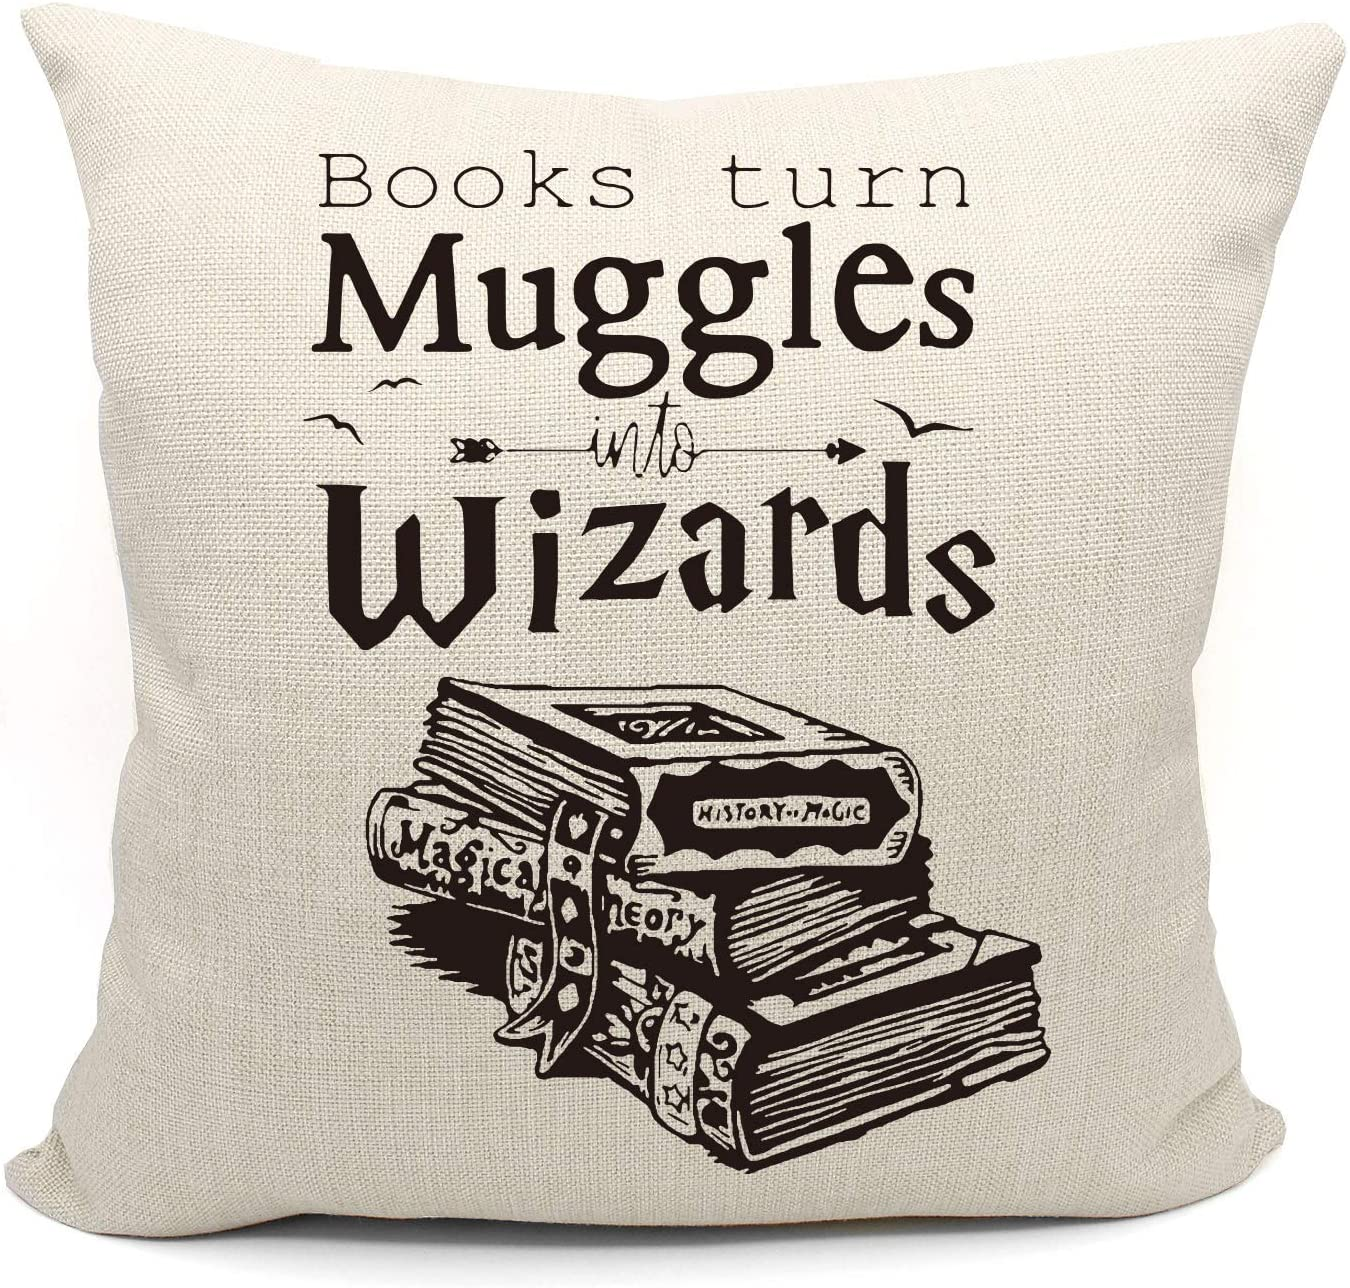 Mancheng-zi Funny Quotes Books Turn Muggles Into Wizards Throw Pillow Case, Great Gift for Book Lover, College Dormitory Decor, Decorative Cotton Linen Cushion Cover for Sofa Couch Club18 x 18 Inch